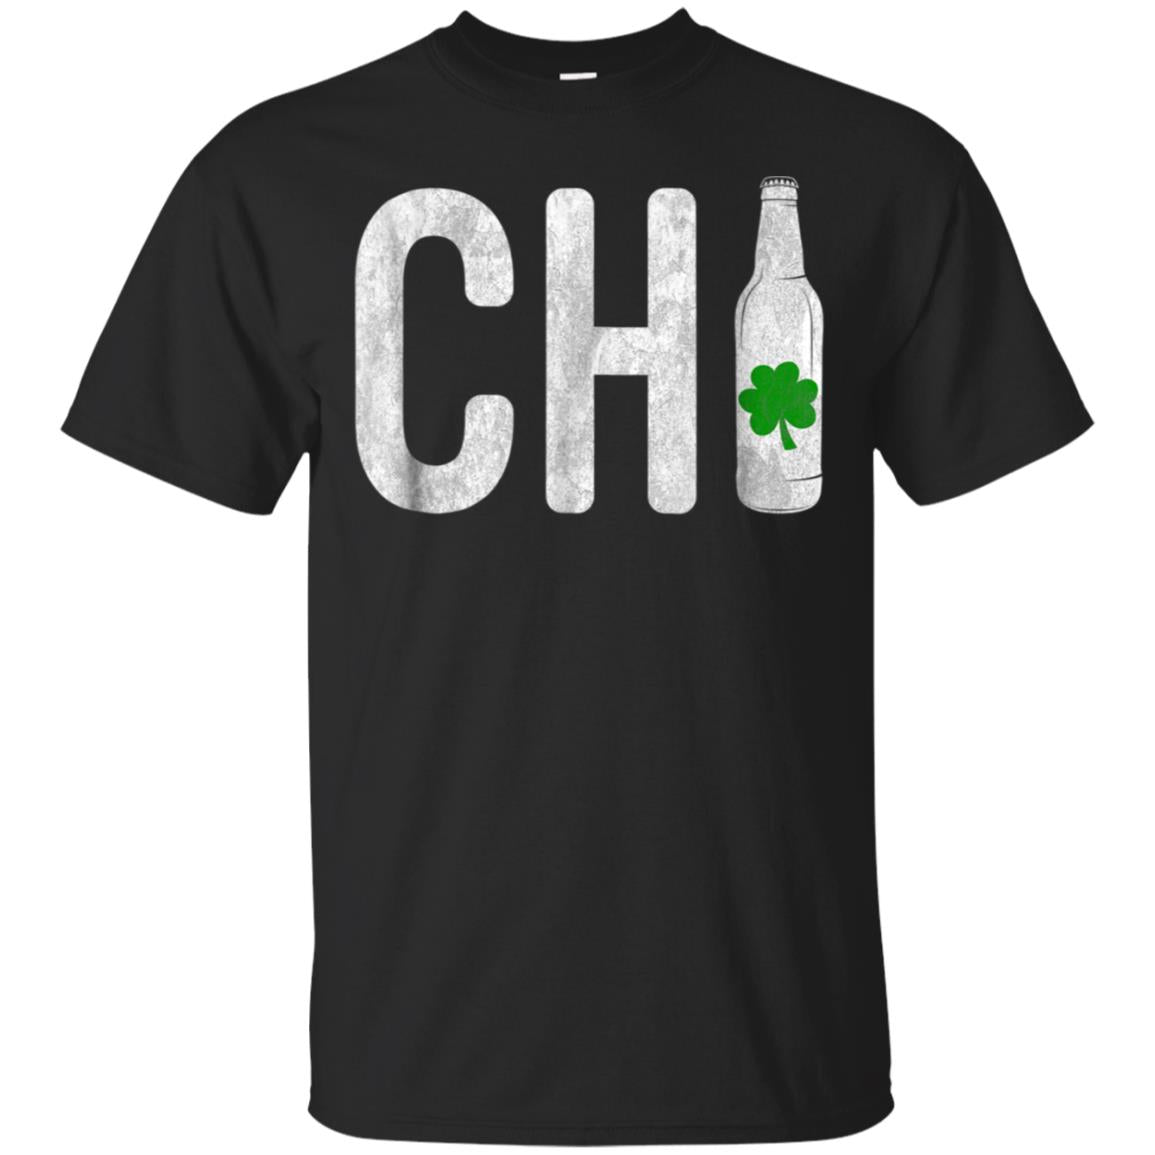 CHI Chicago Irish Beer Bottle St Patricks Day T Shirt 99promocode